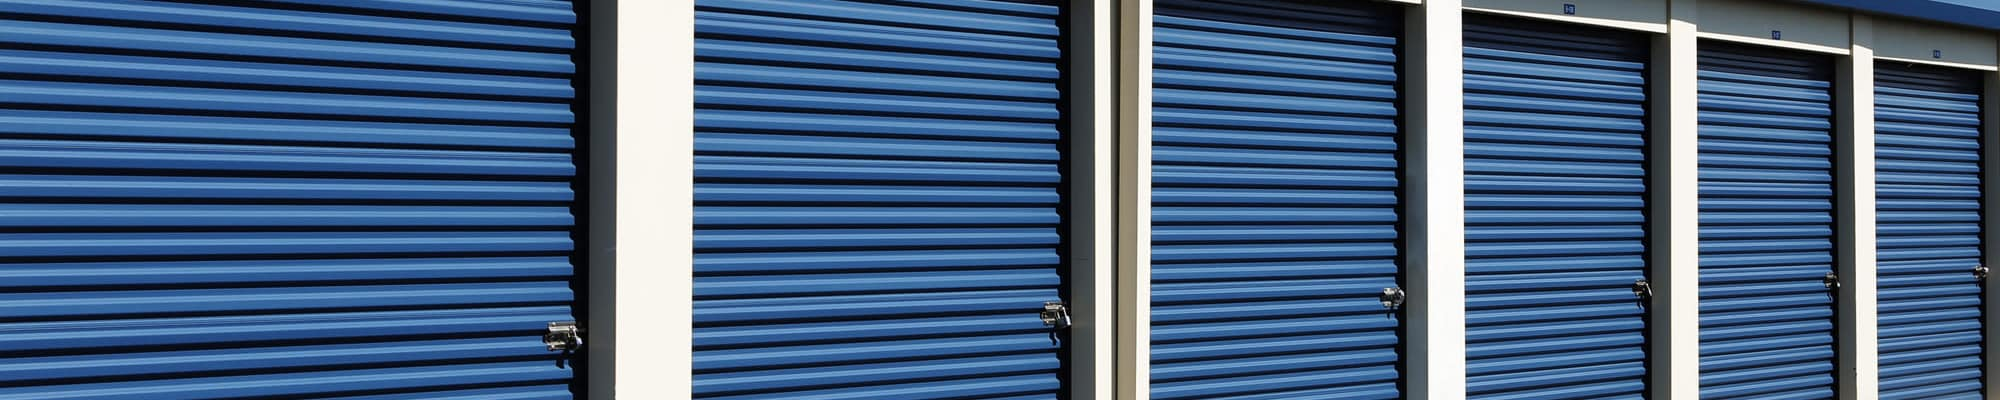 Information about the neighborhood at Midgard Self Storage in Greenville, South Carolina